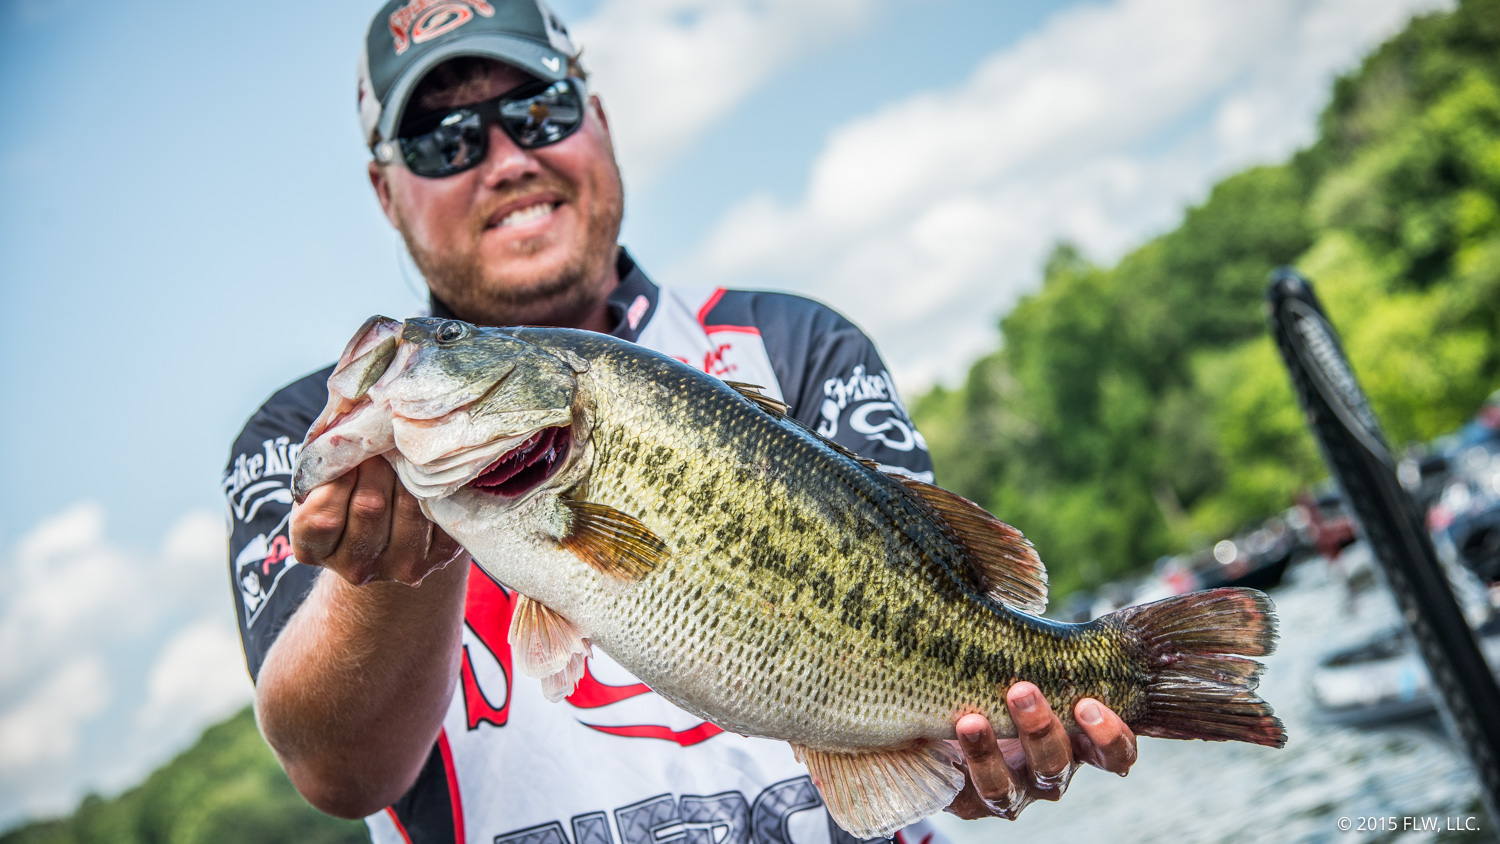 Wooley Takes Lead On Day Two Of Walmart Flw Tour On Lake Chickamauga Presented By Igloo Coolers